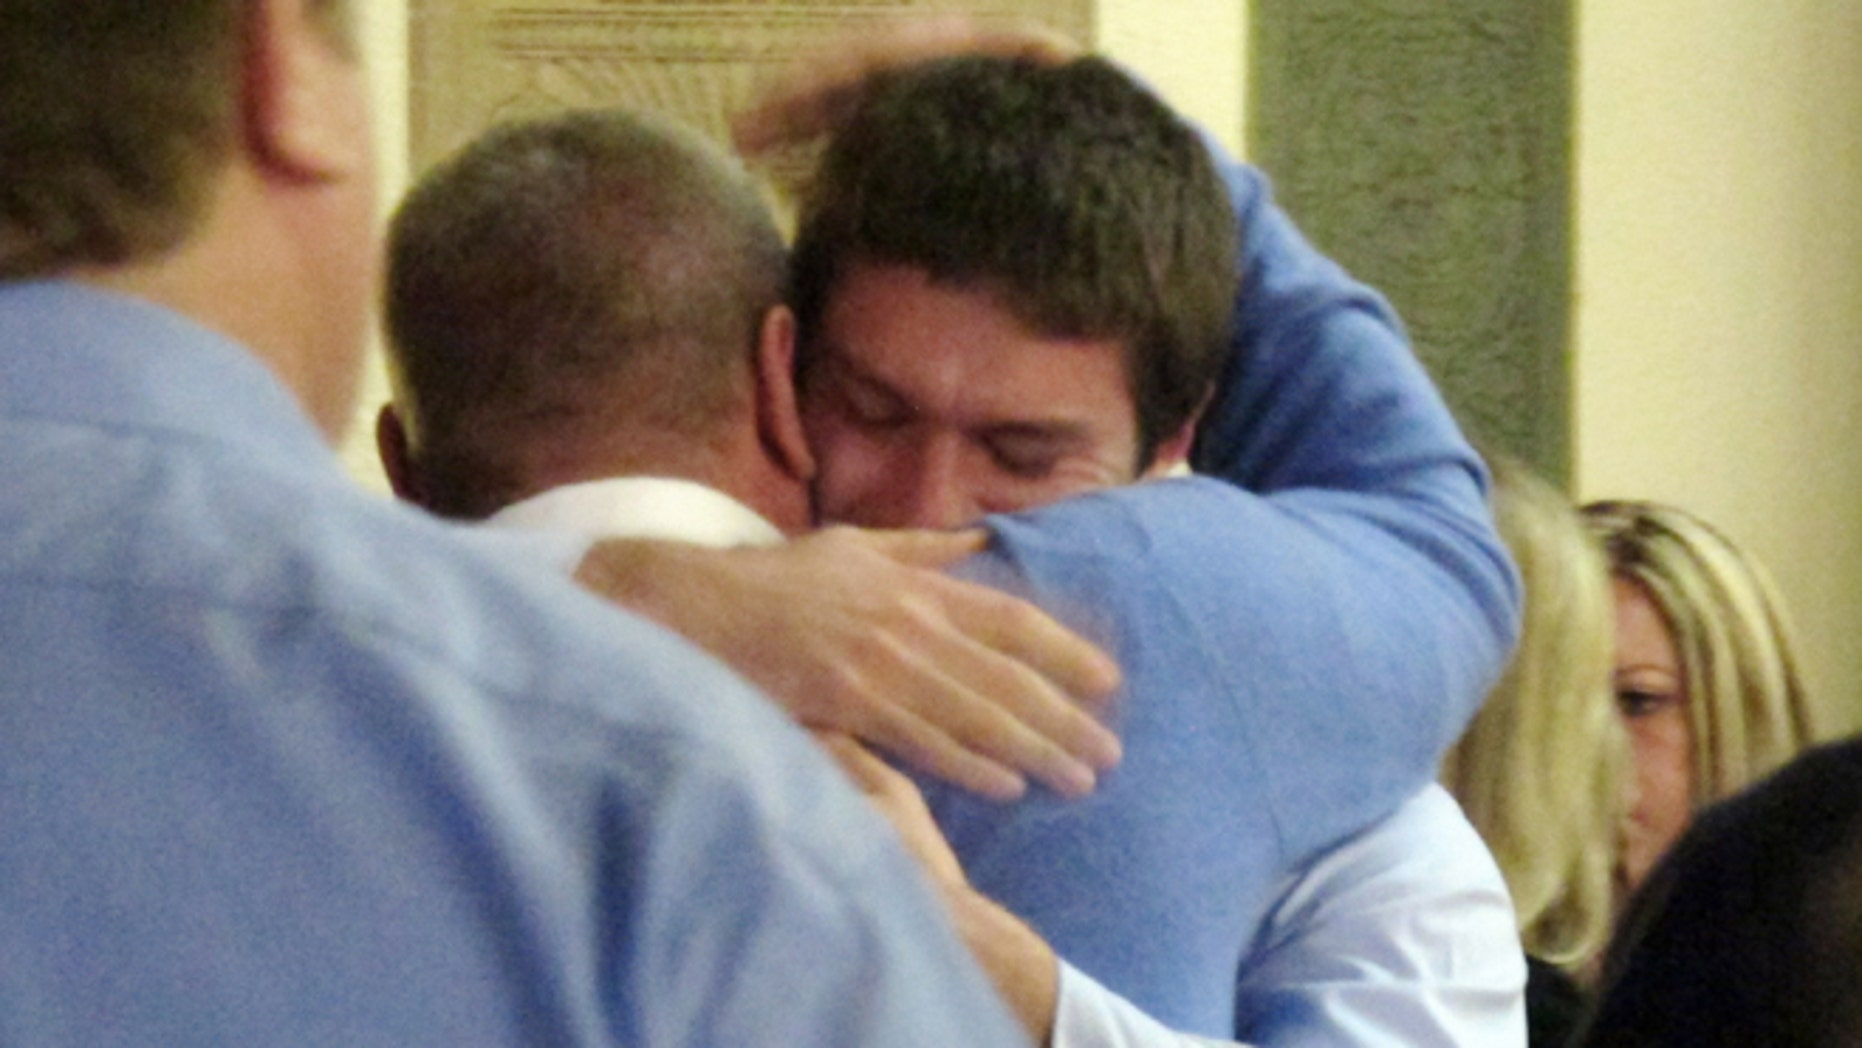 March 1: Former University of Montana quarterback, Jordan Johnson, facing camera, is hugged by a supporter after being acquitted of rape charges during his trial.